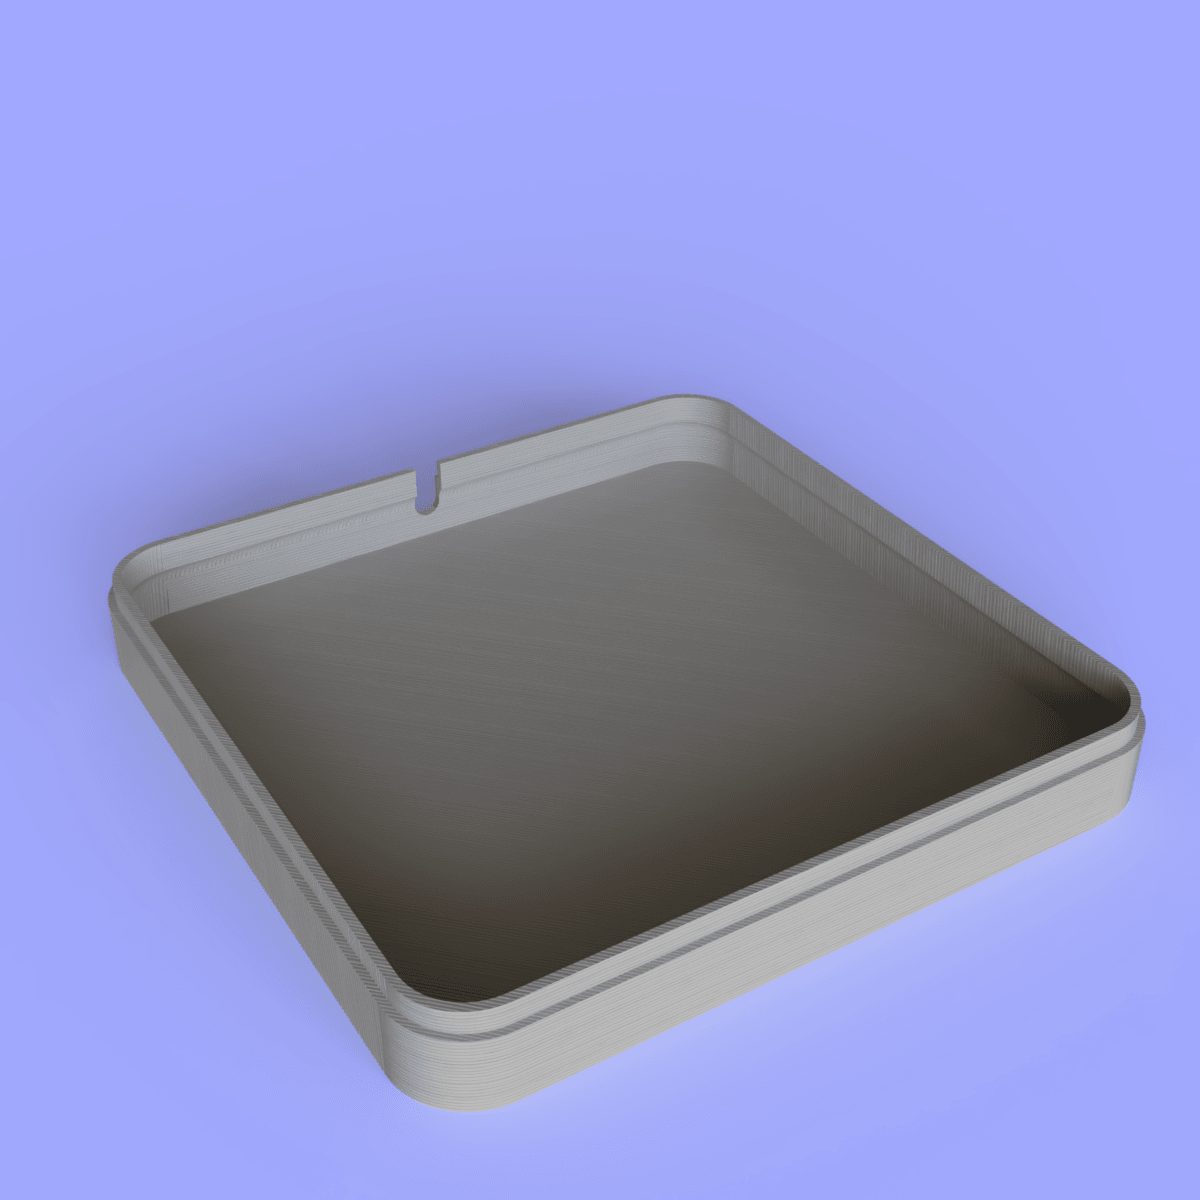 Idock_2019-Jan-14_04-35-29PM-000_CustomizedView21680286832_png.png Download free STL file Dock Iphone X • 3D printable design, Geandro_Valcorte